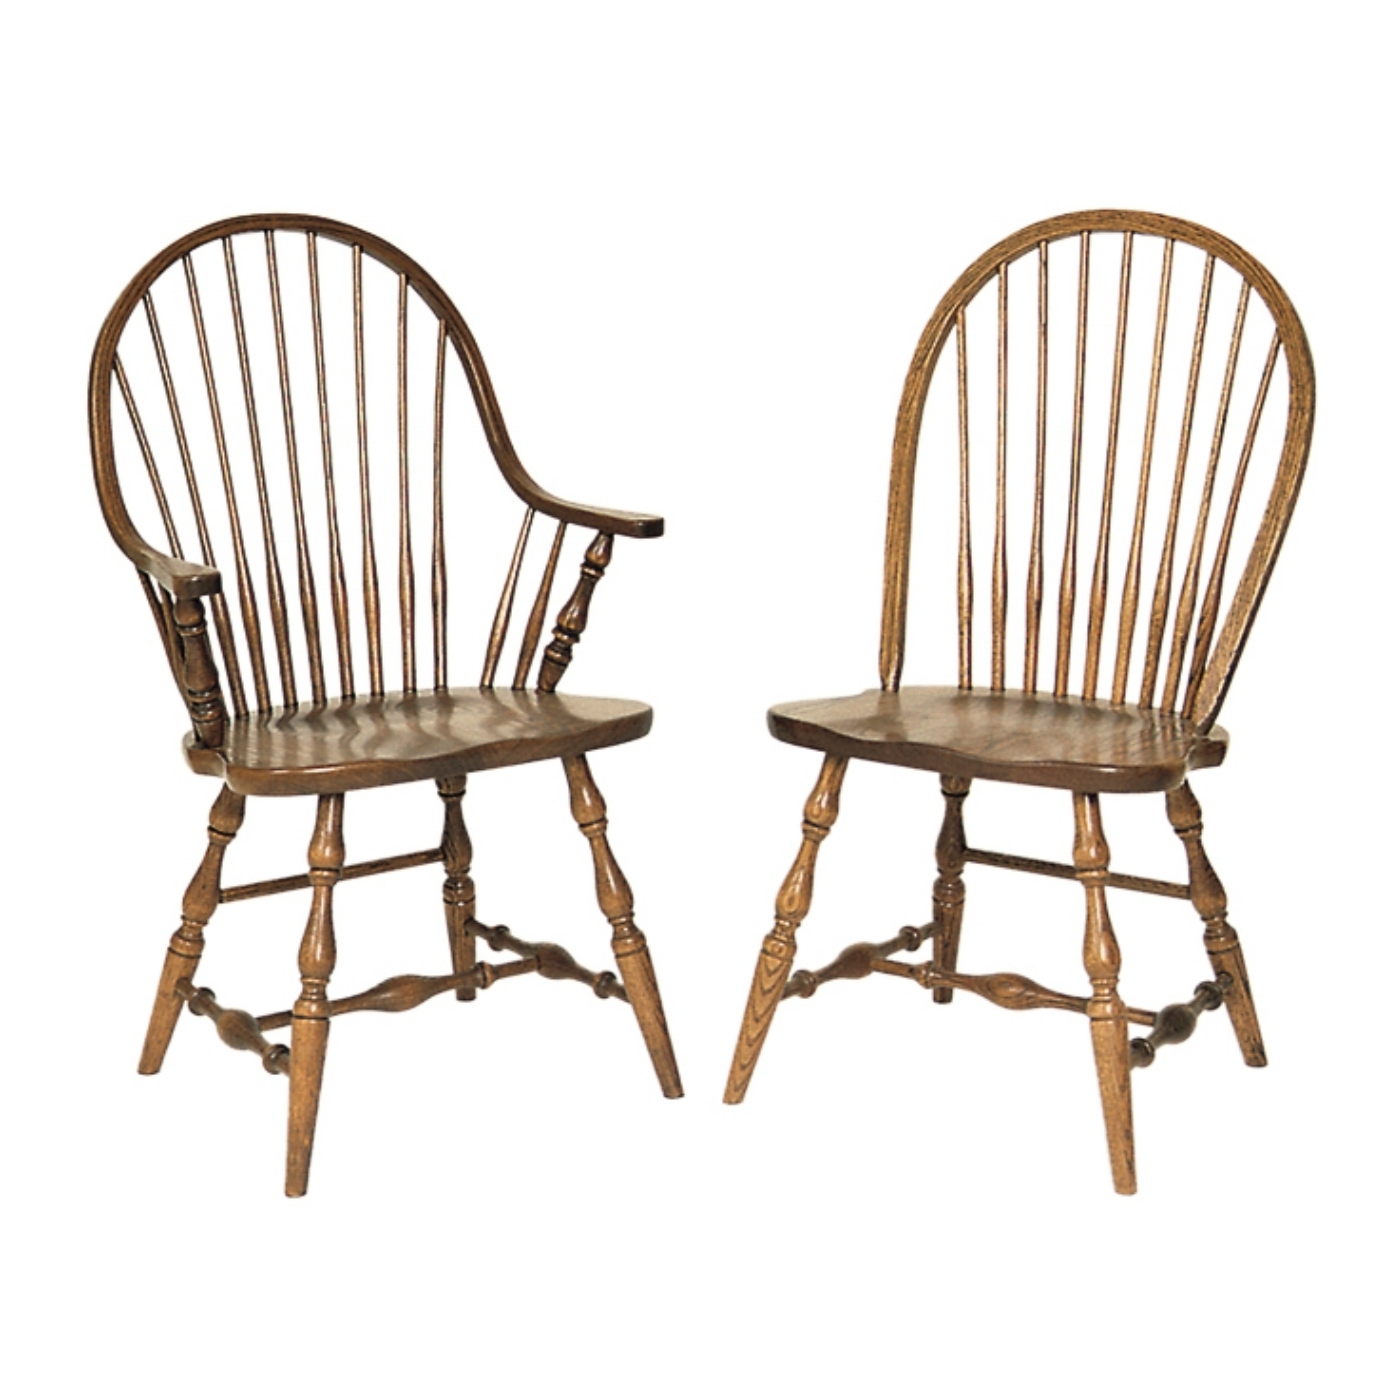 Penns Creek Legacy New England Windsor Chairs    Starting at: $339.99